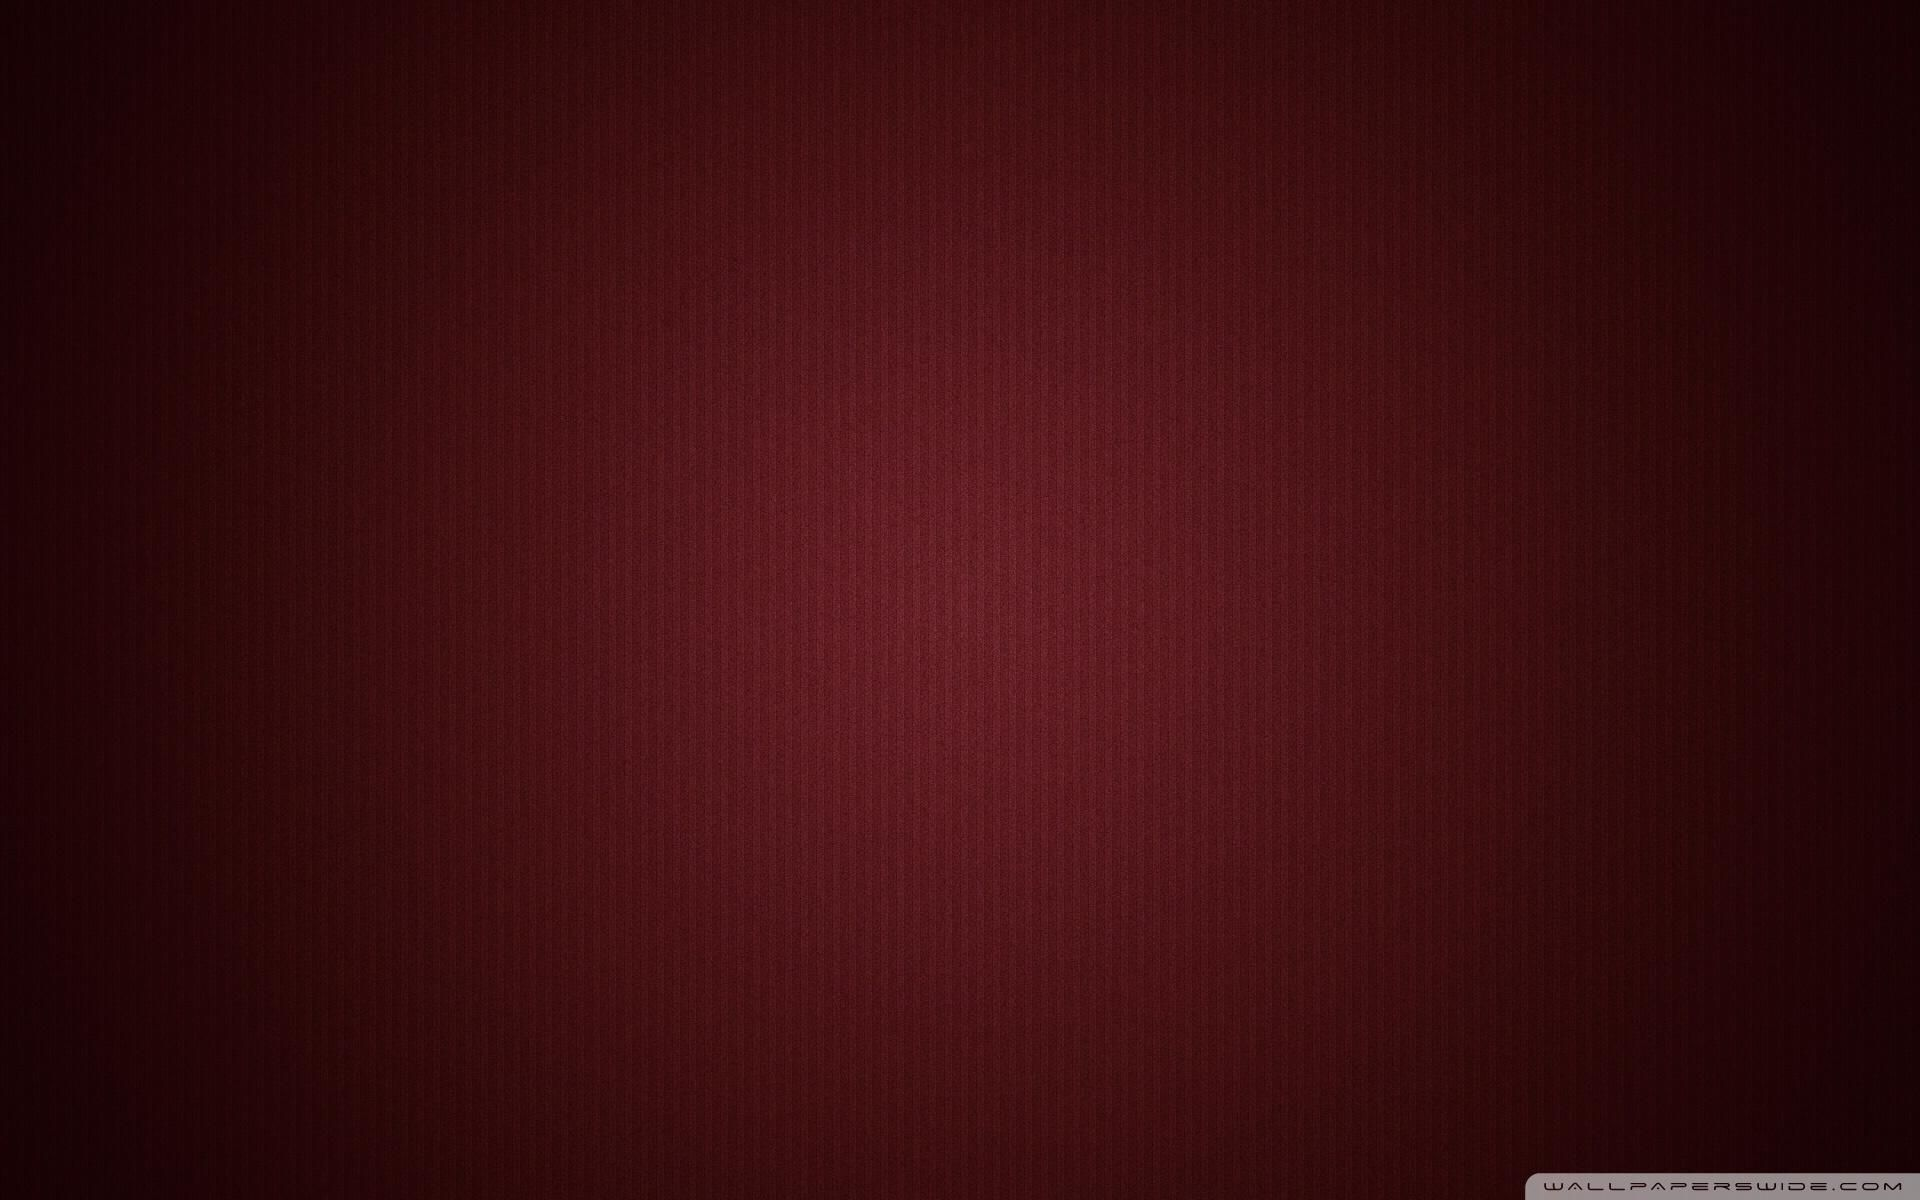 1920x1200 3030-solid-red-pattern-background-wallpaper-1920x1200 ...